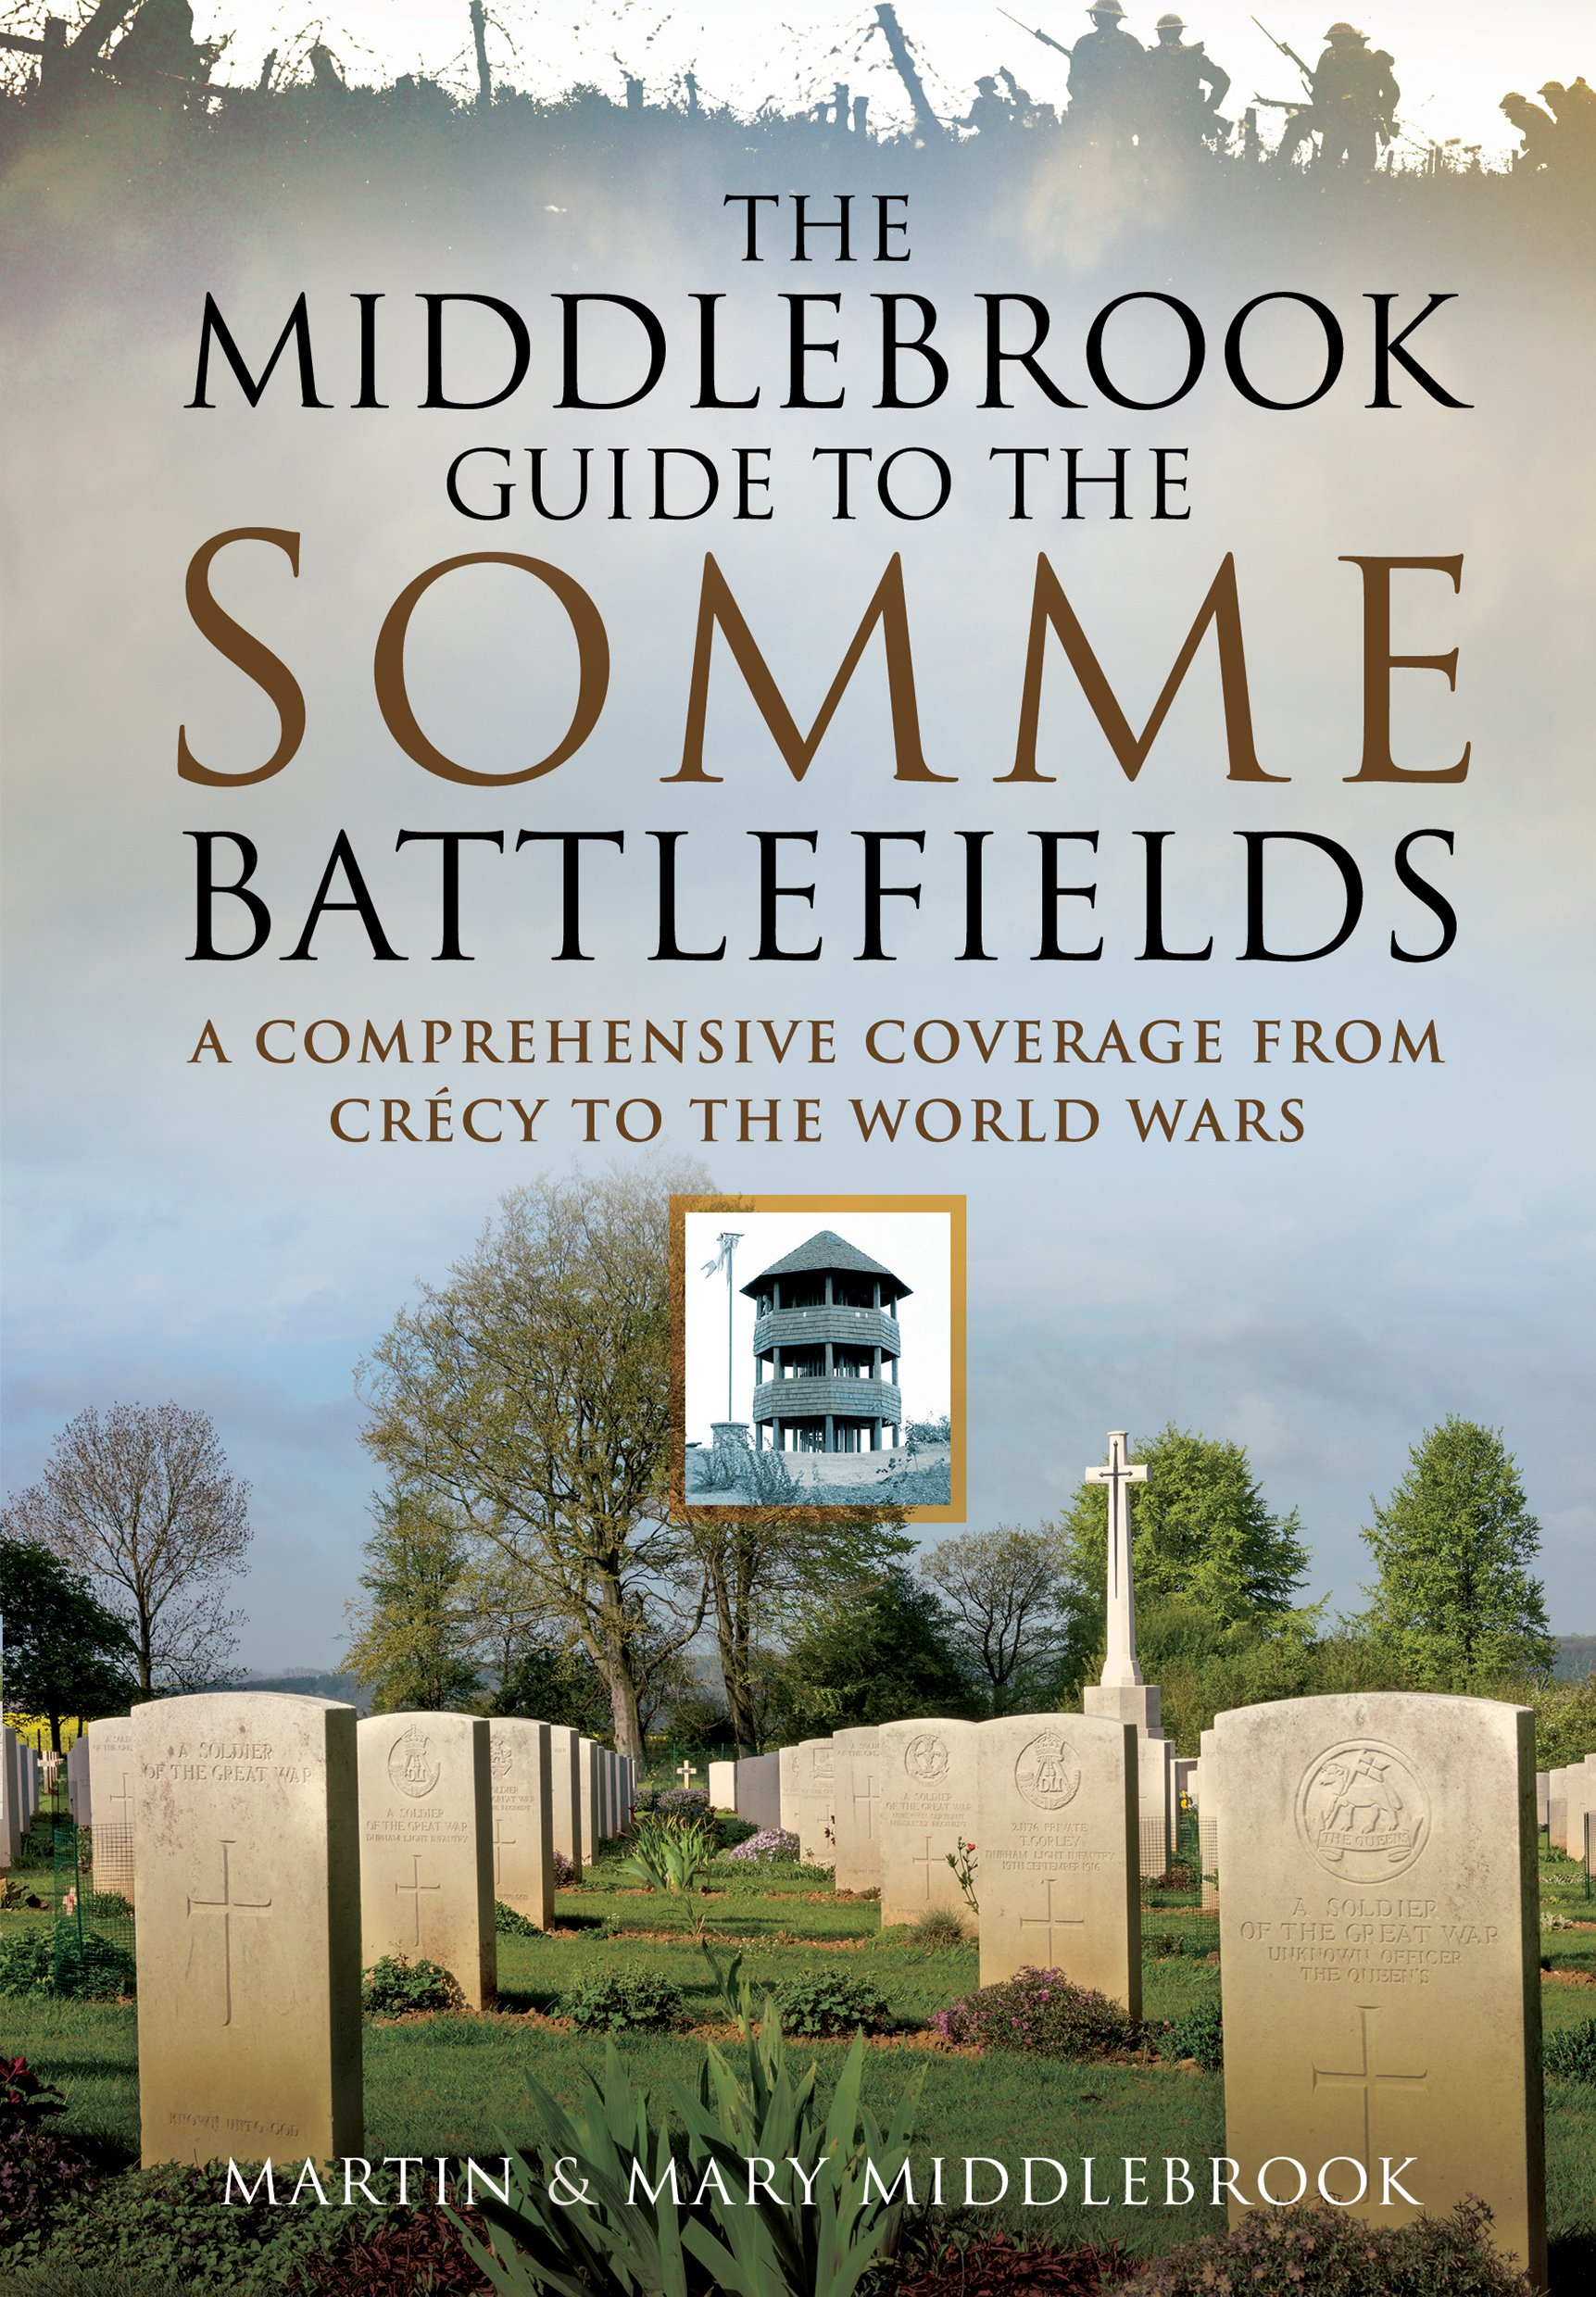 The Middlebrook Guide to the Somme Battlefields: A Comprehensive Coverage from Crecy to the World Wars